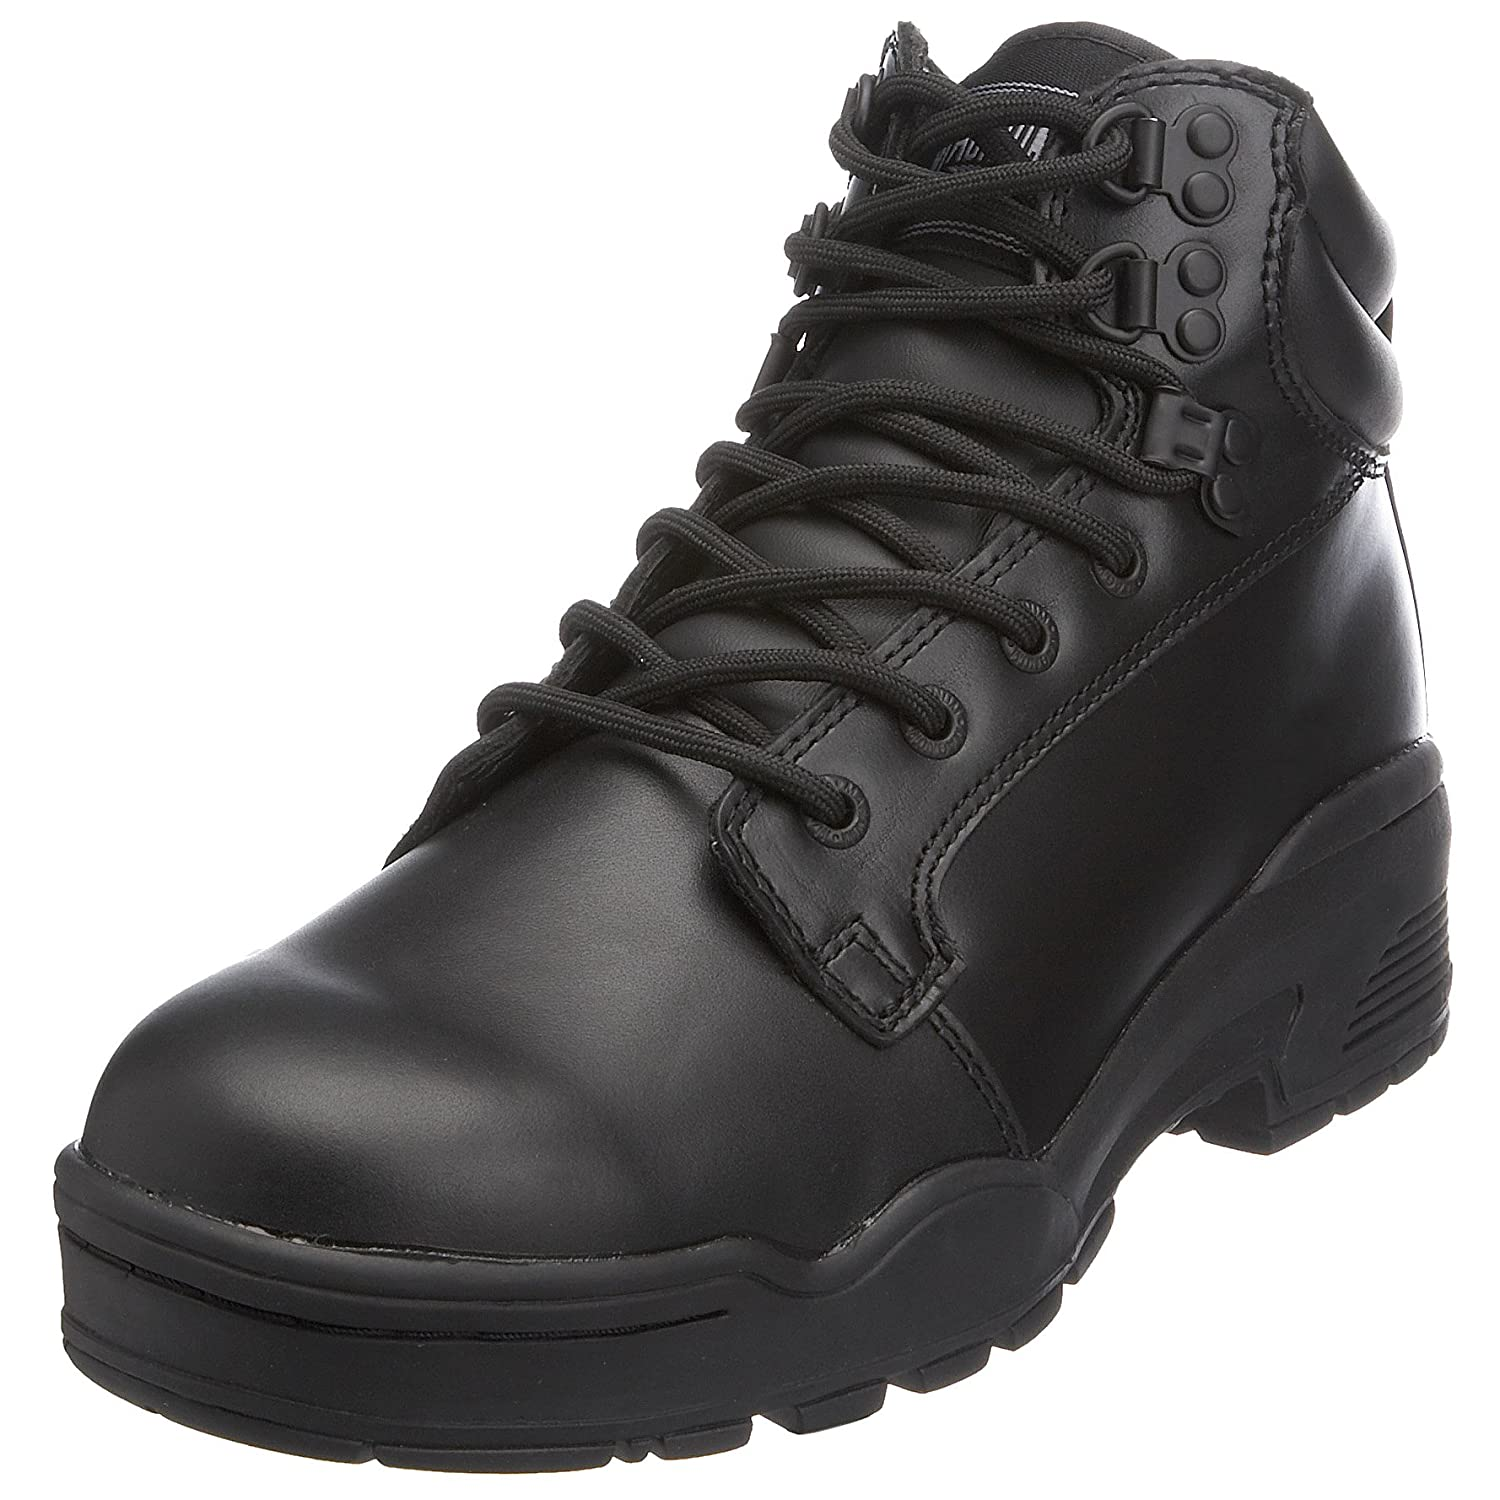 Magnum Patrol Tacticle, Unisex-Adults' Work and Safety Boots Unisex-Adults' Work and Safety Boots 11891/069